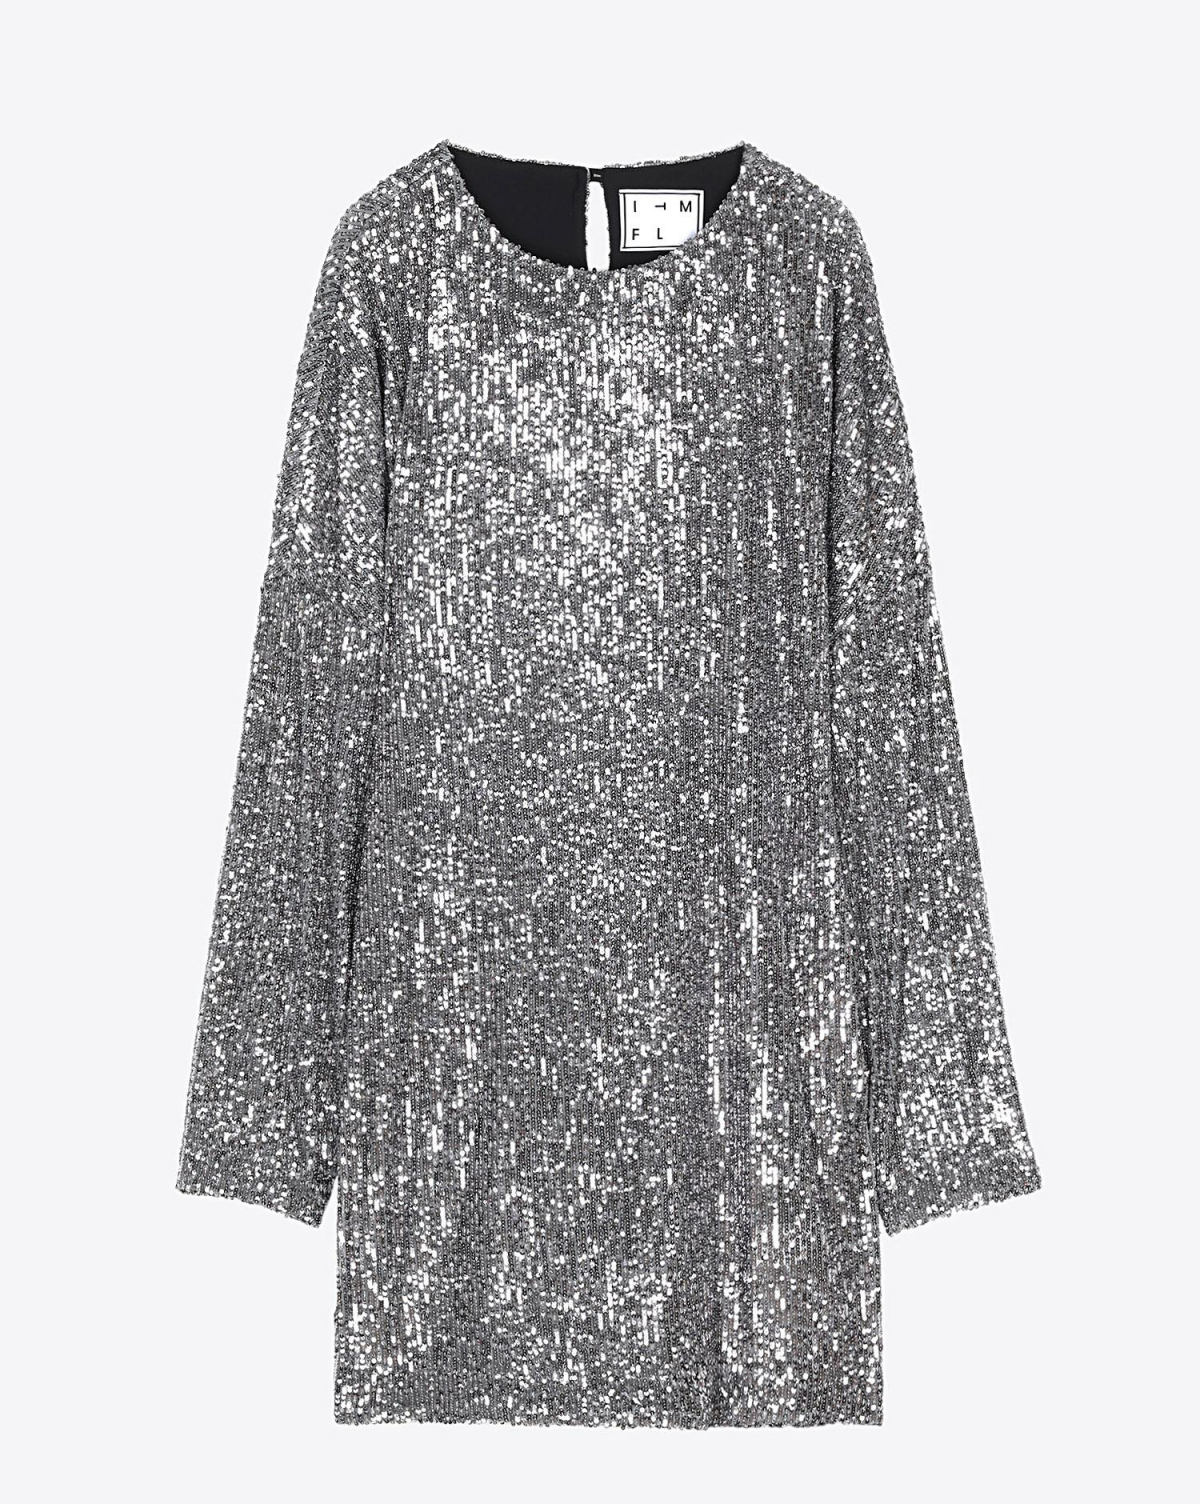 In The Mood For Love Pré-Collection Alexandra Dress - Silver/Grey